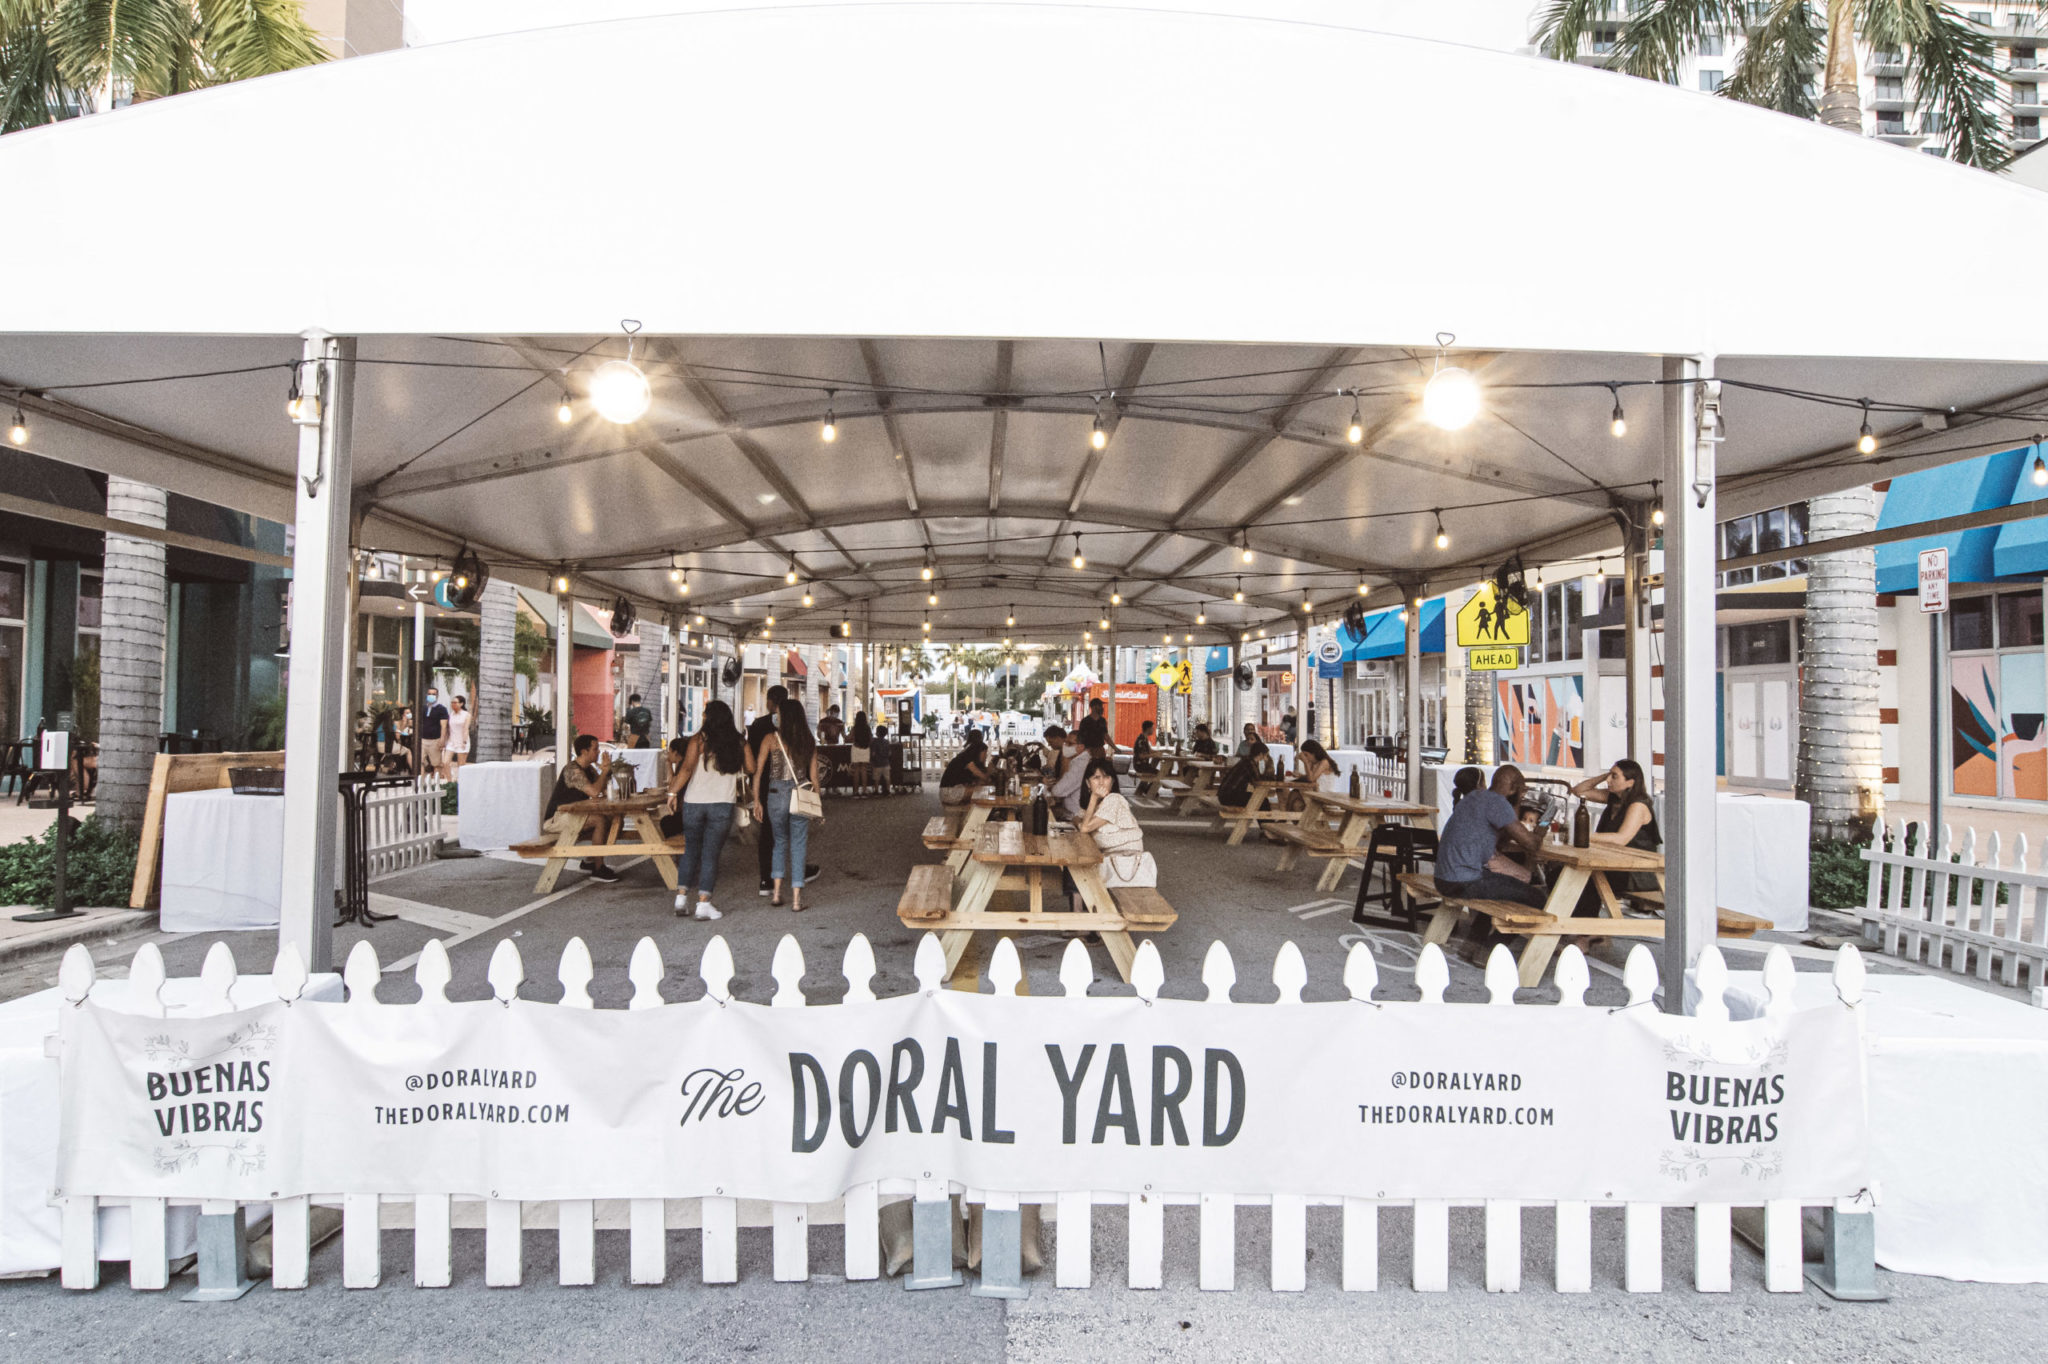 The Doral Yard tent on Main Street by Rod Deal